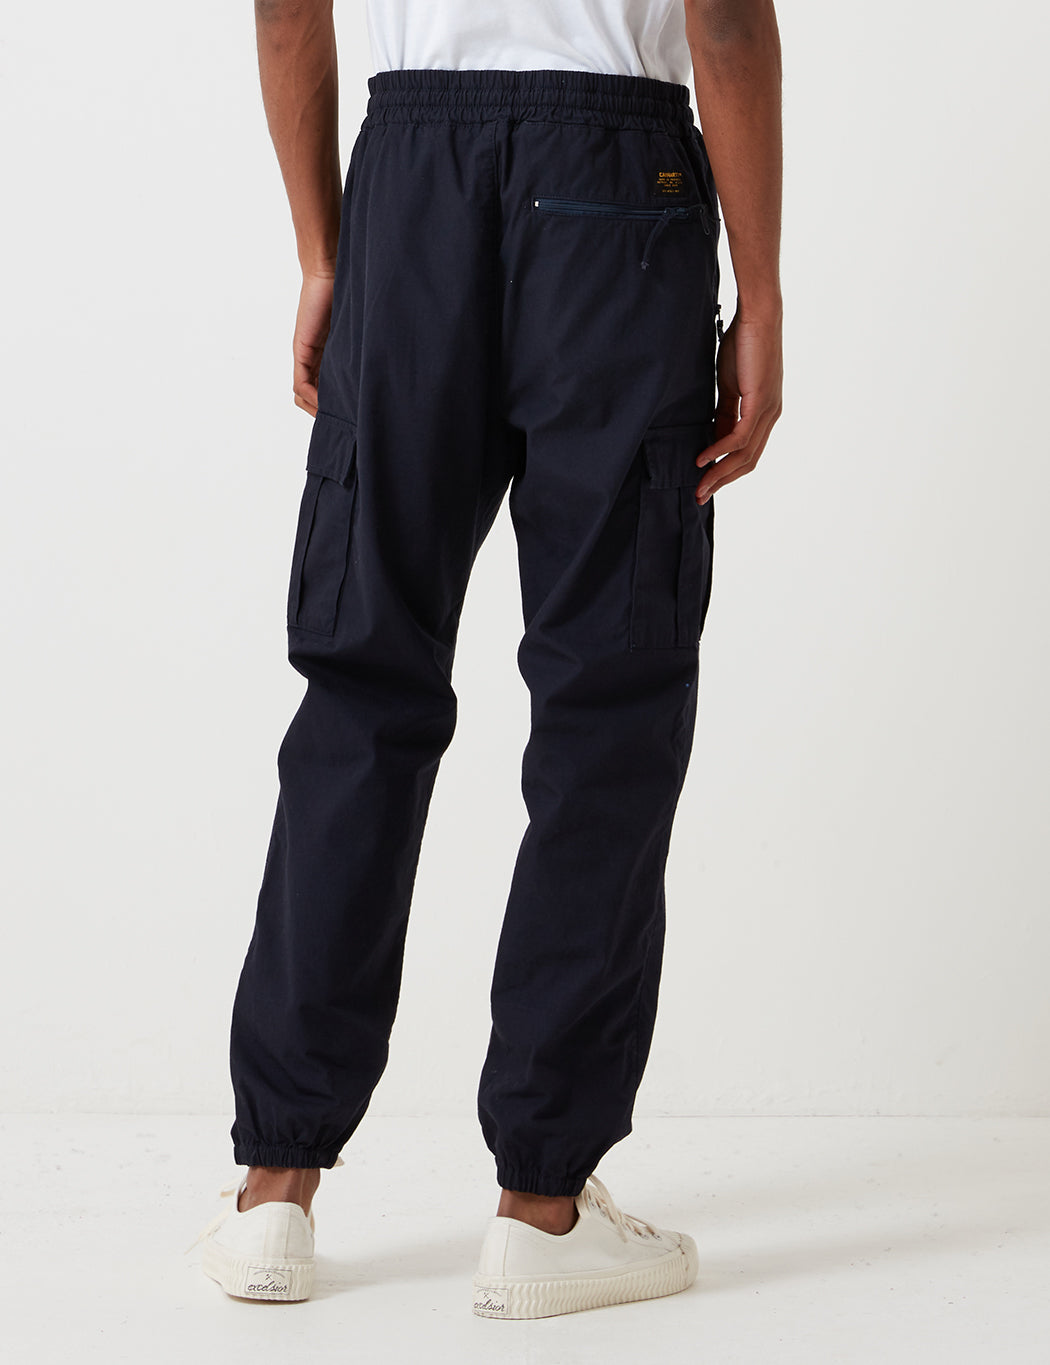 fantastic savings price reduced quality first Carhartt-WIP Cargo Jogger Pants (Ripstop) - Dark Navy Blue Rinsed